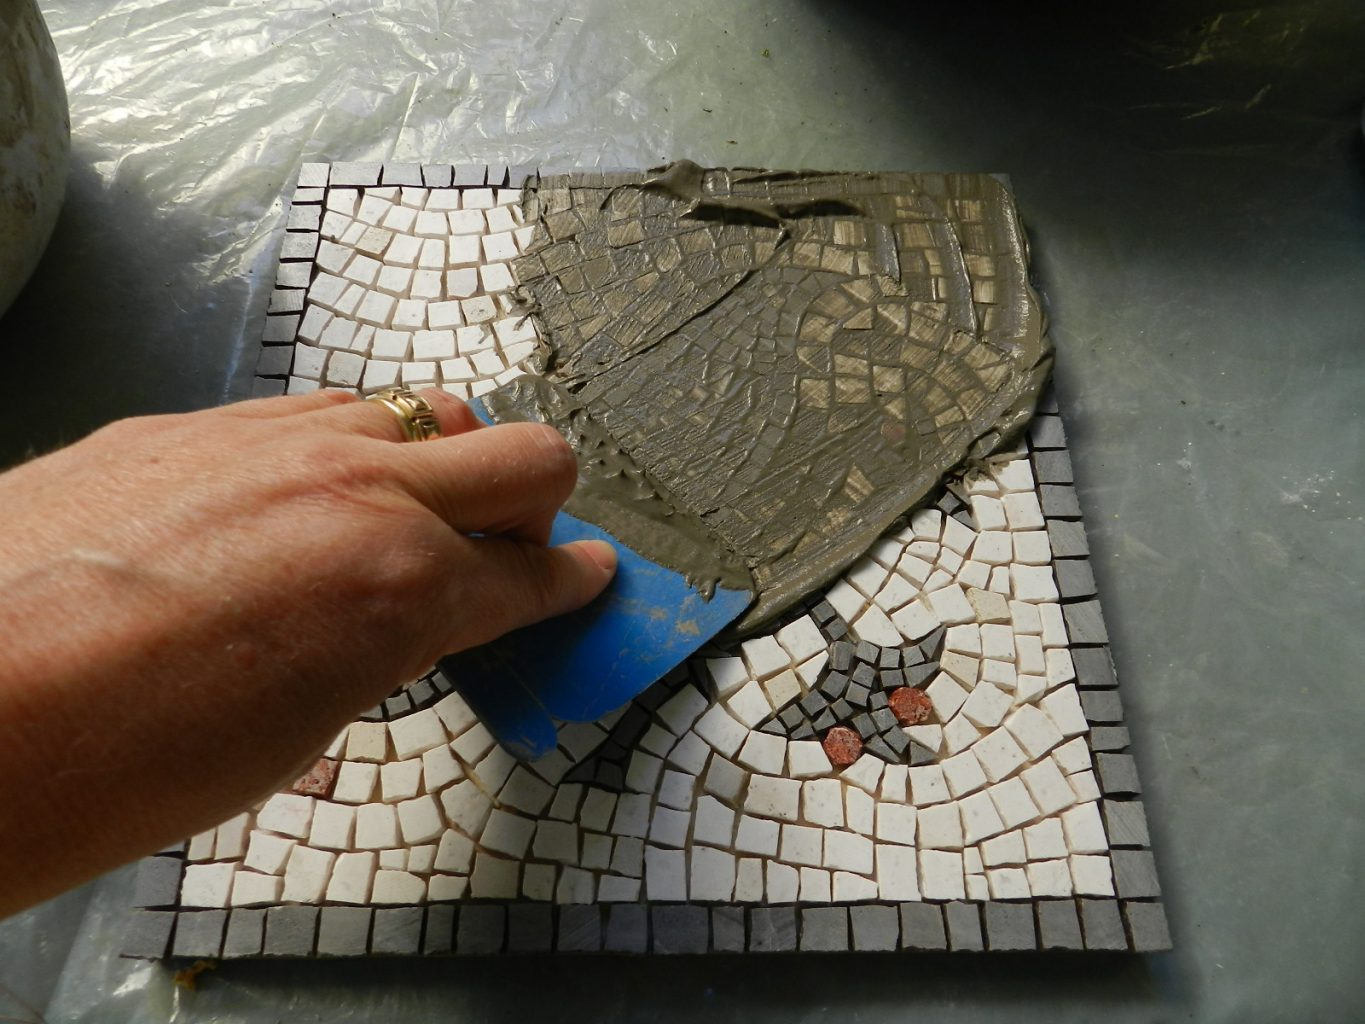 Making a Mosaic Trivet, Part IV: Grouting mosaics